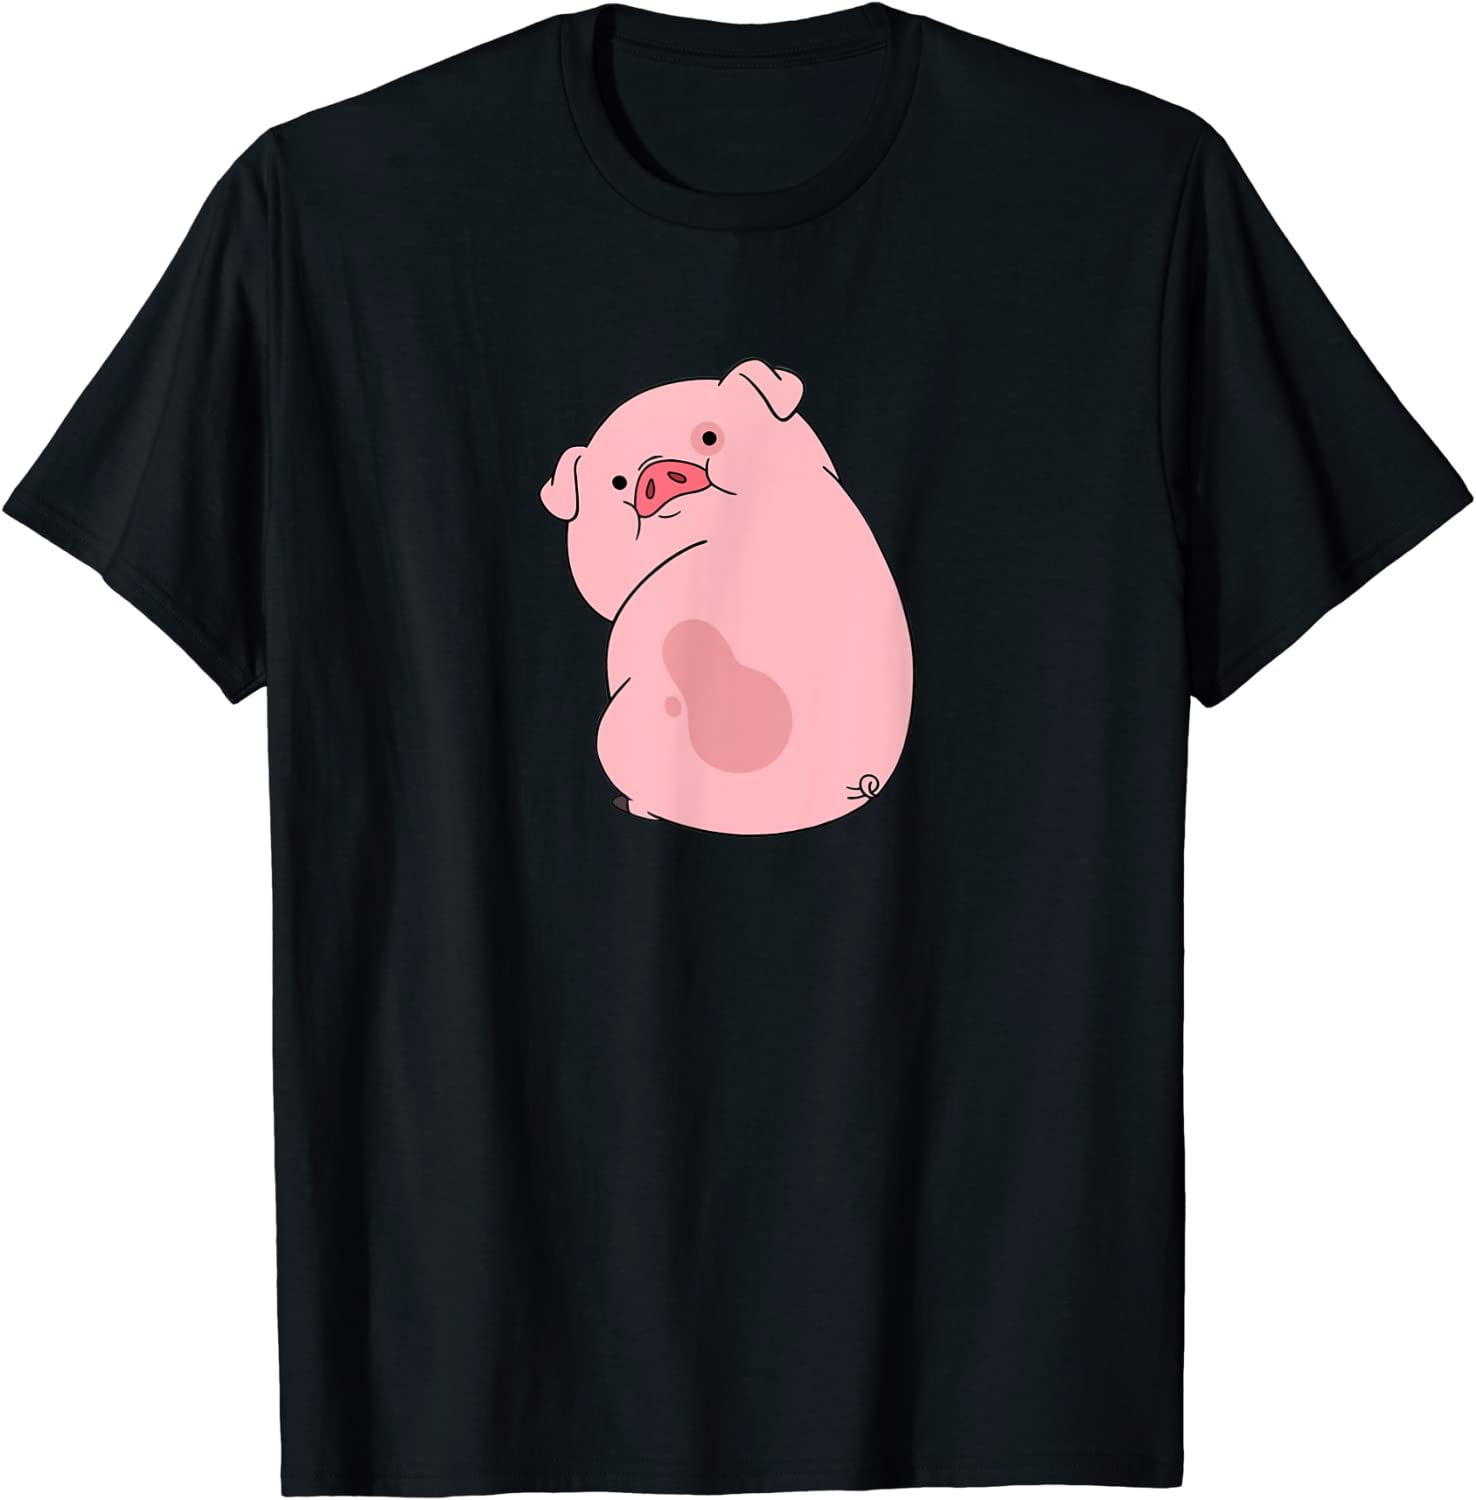 Disney Channel Gravity Falls Waddles the Pig T-Shirt